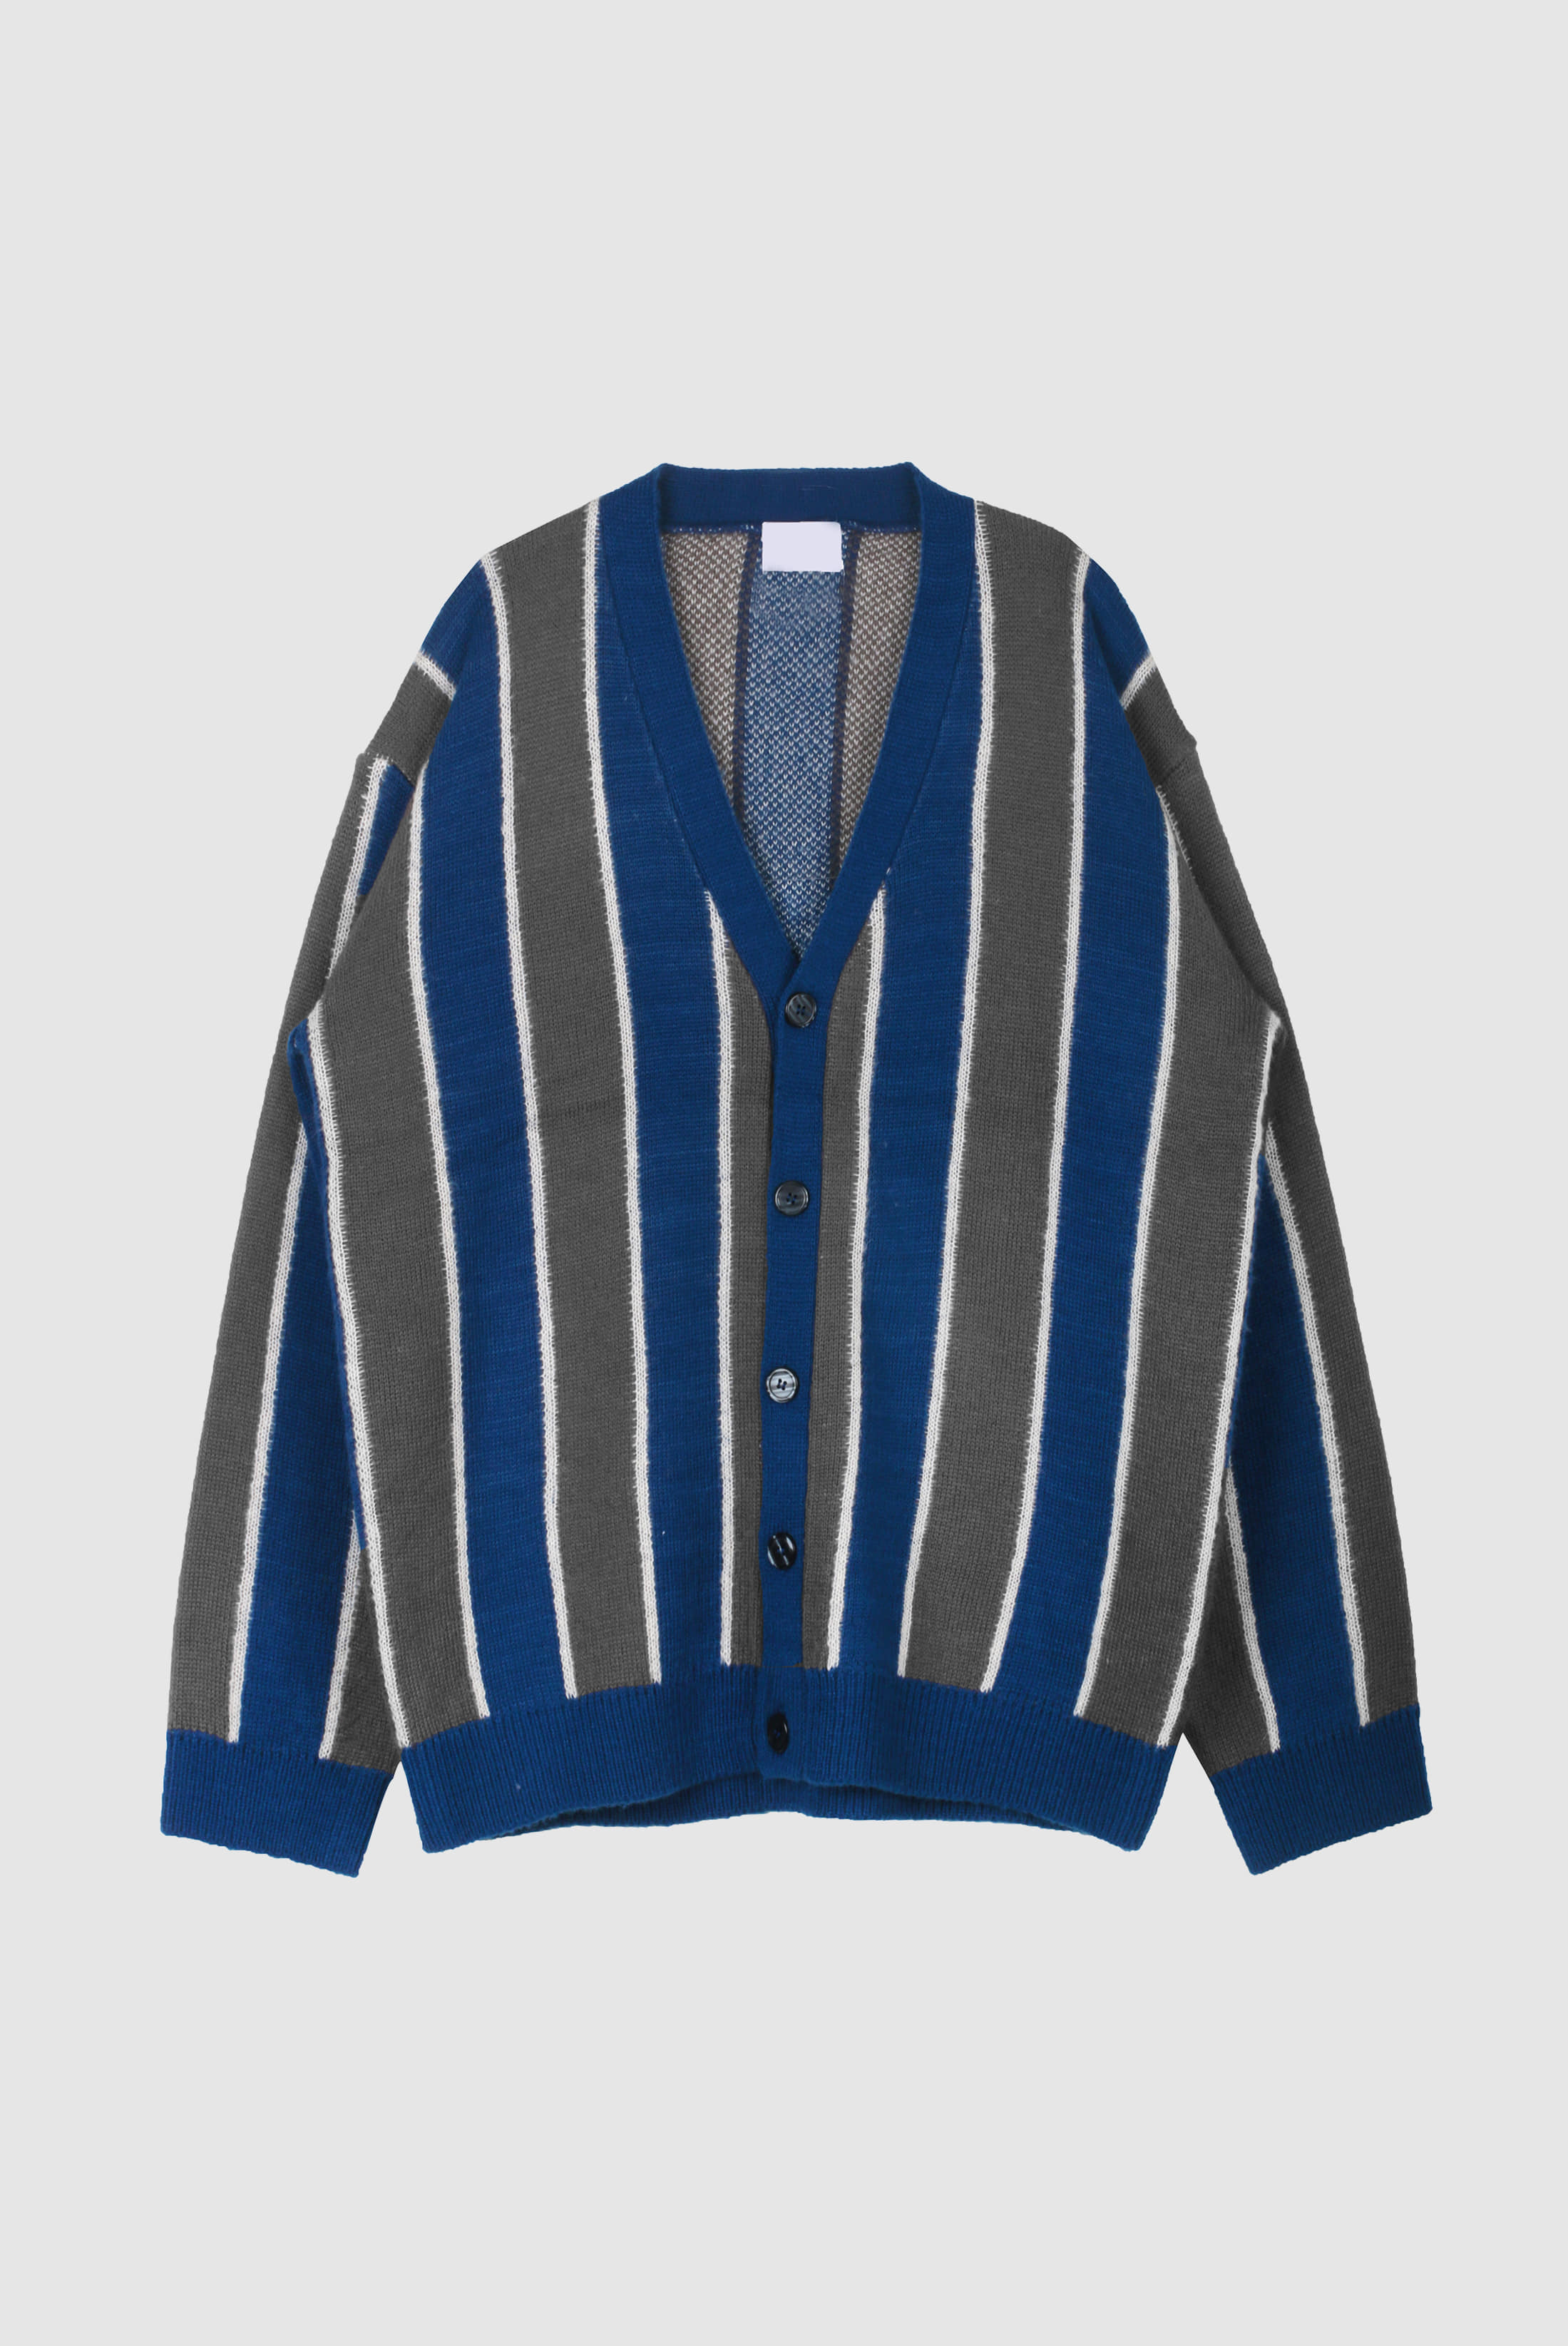 Stripe_Tam Knit_Cardican